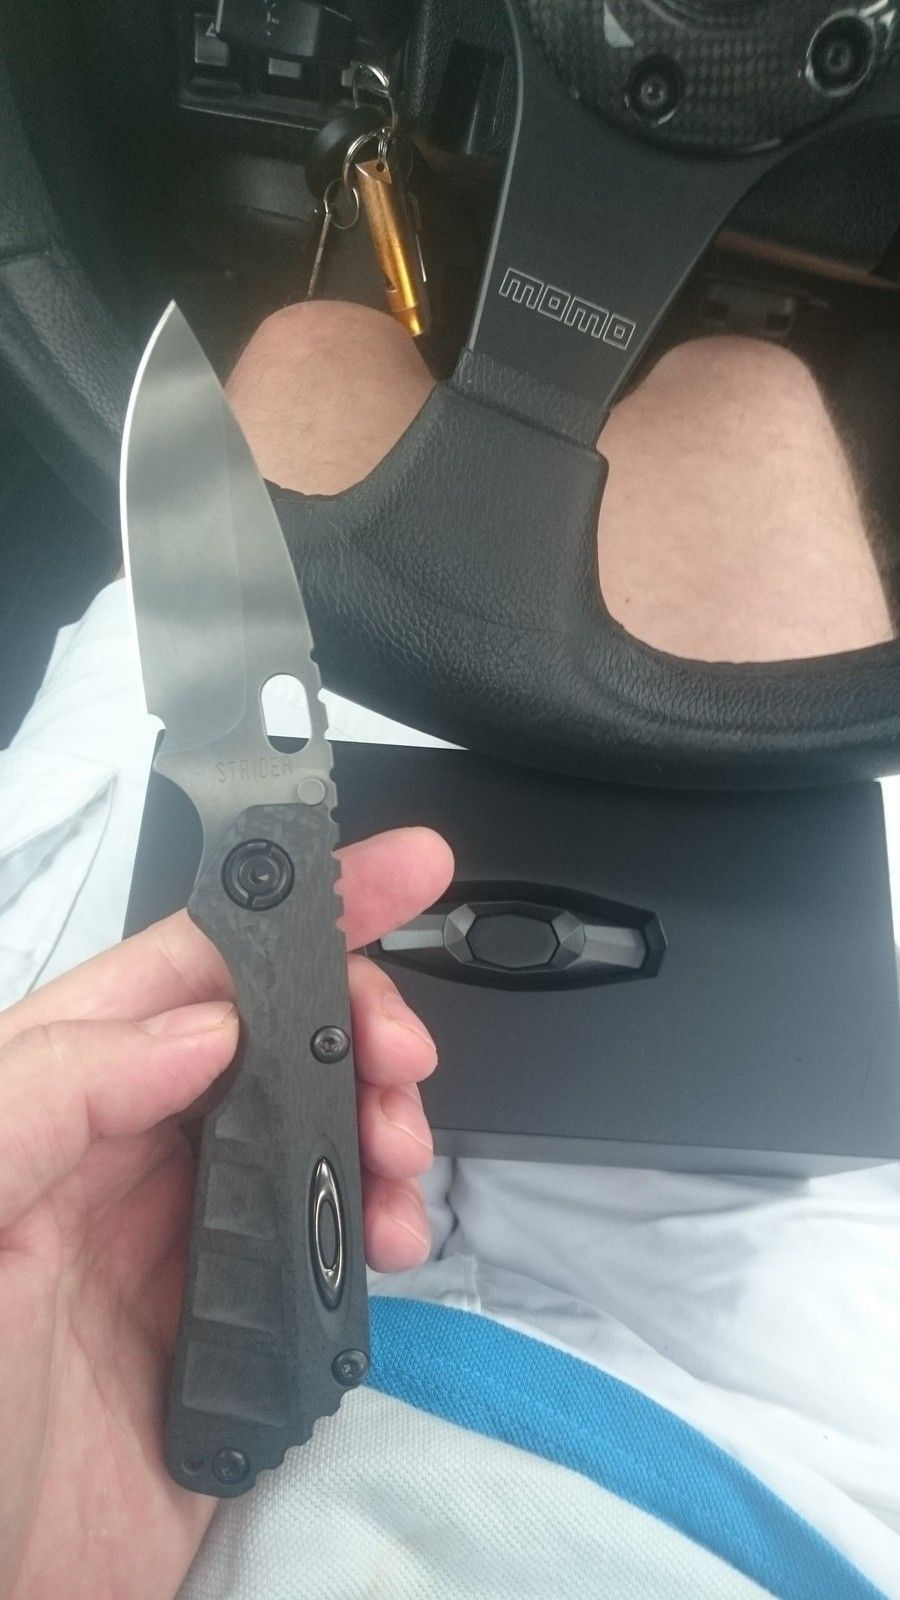 Oakley Knife Elite Strider Machined Carbon Fiber SNG with camo blade - 2015-07-15 15.59.36.jpg